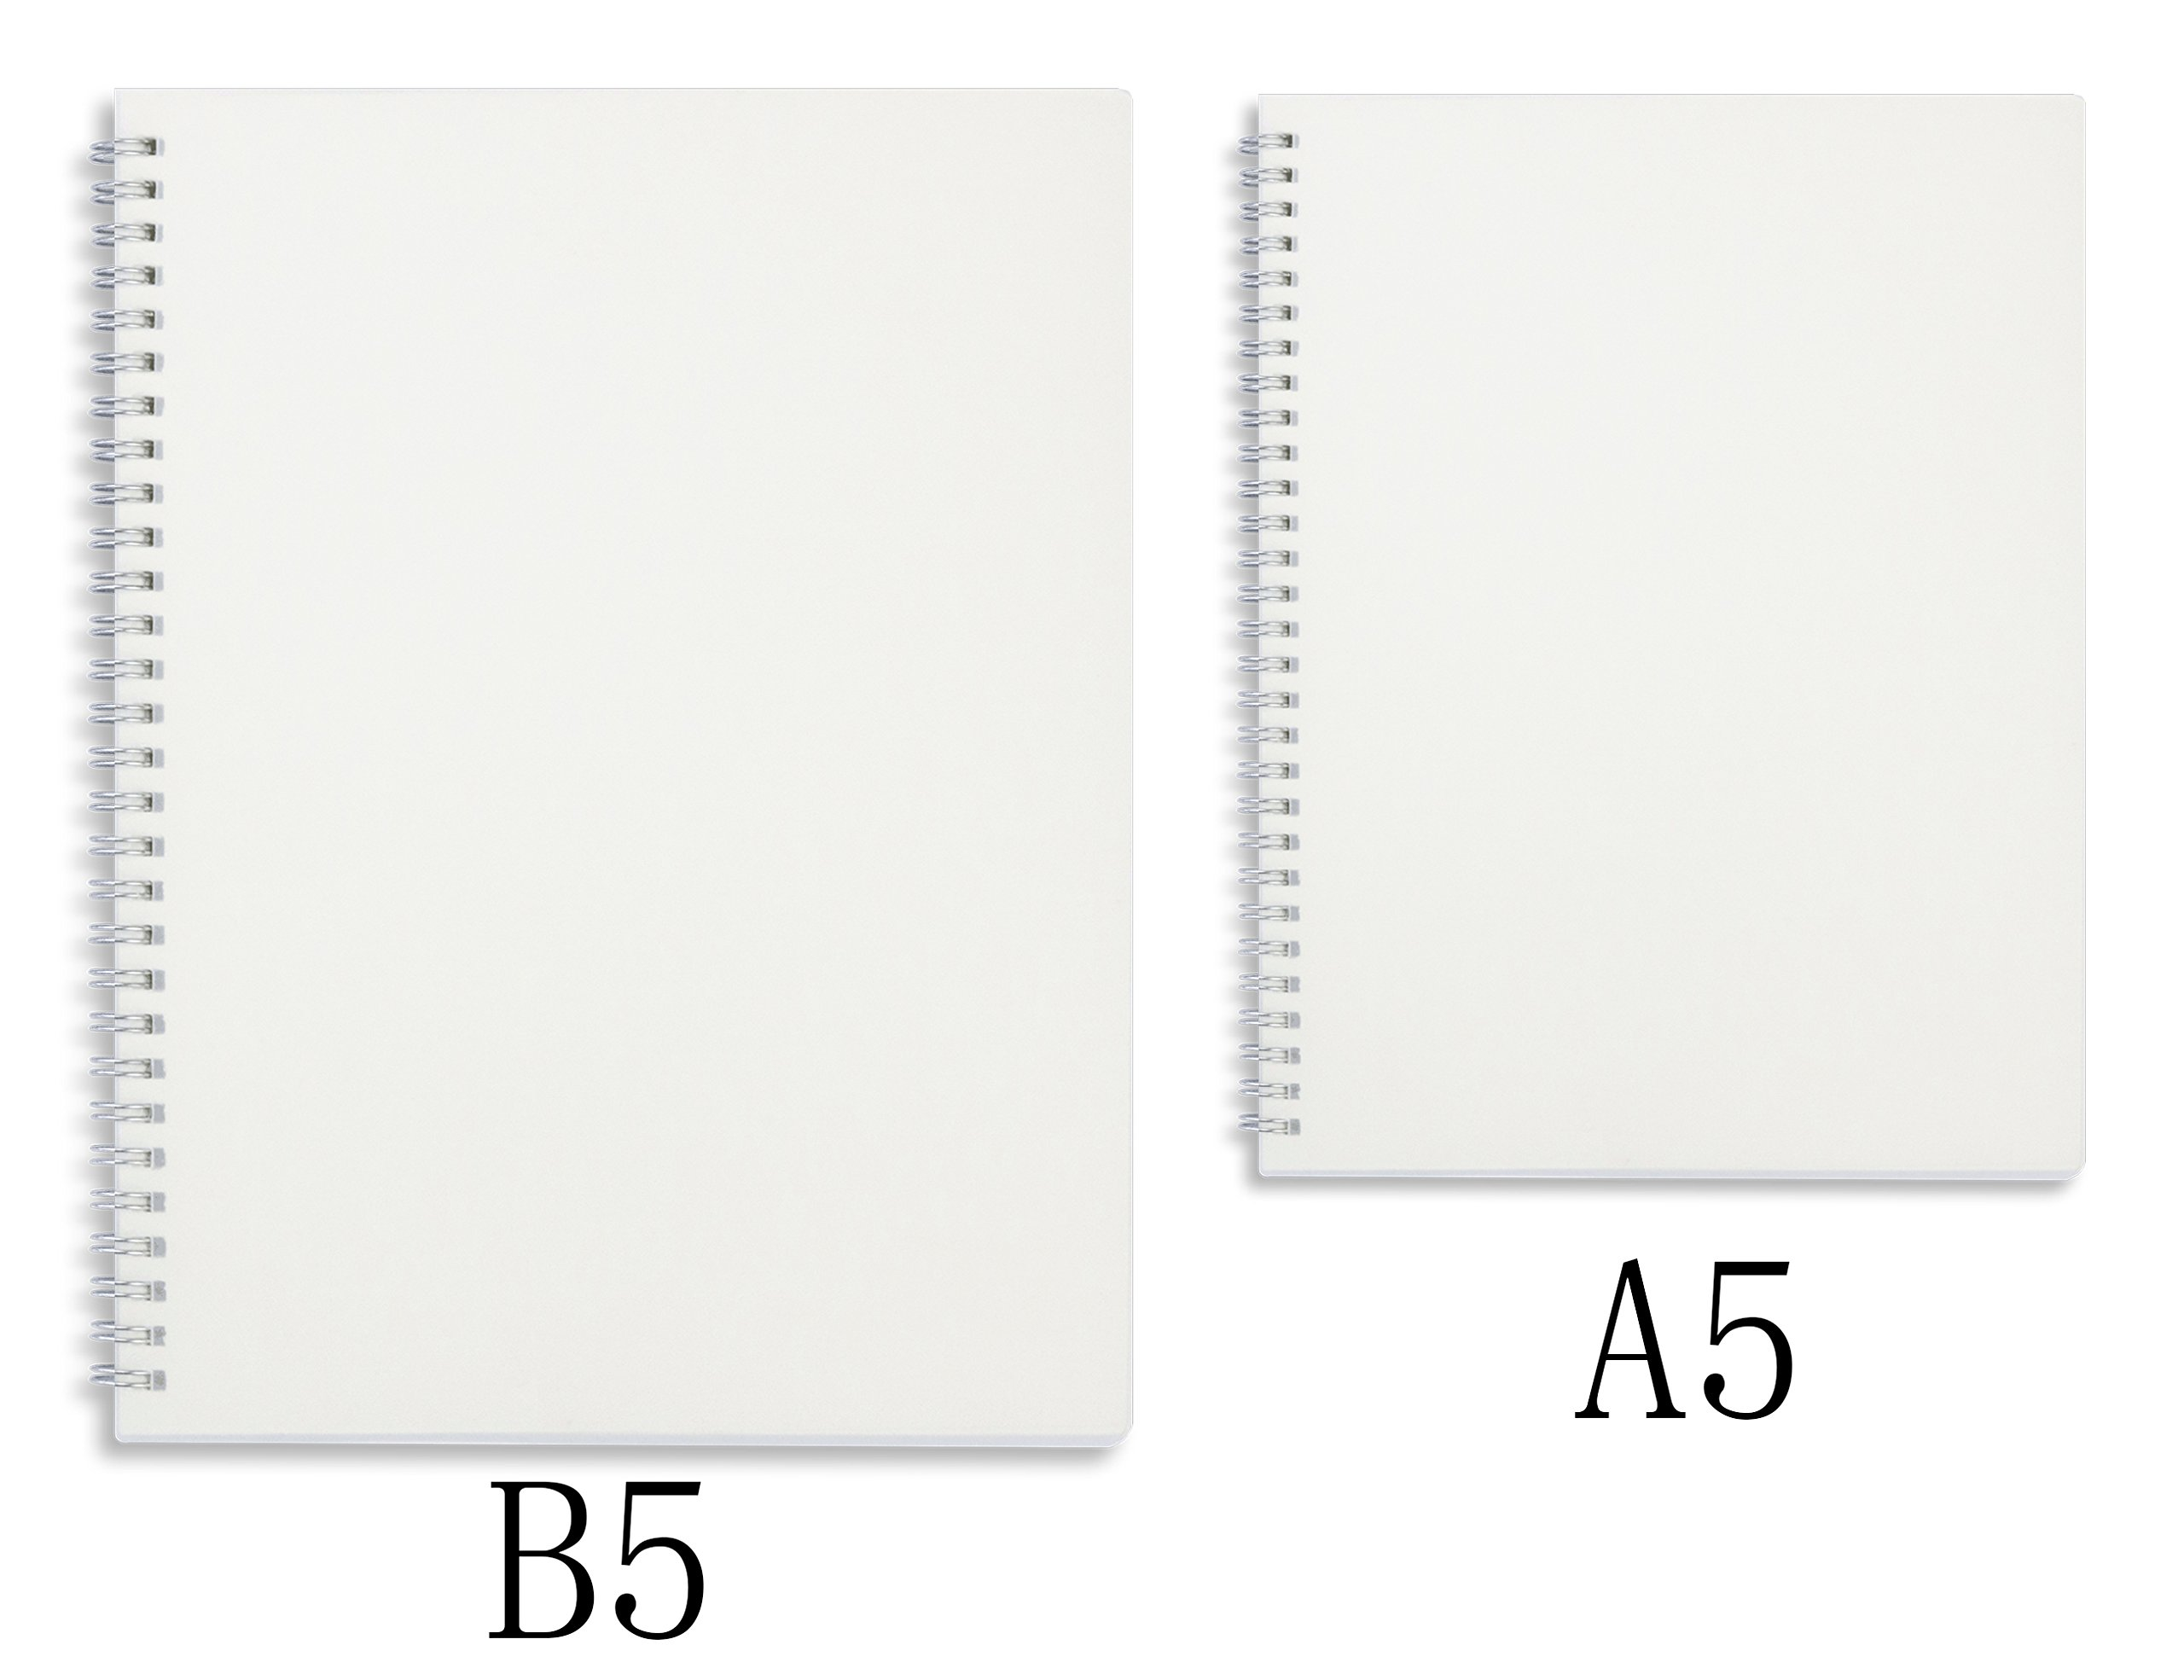 Miliko Transparent Hardcover B5 Square Grid Wirebound/Spiral Notebook/Journal Set-2 Per Pack, 7.1''x10''(Square Grid) by MILIKO (Image #4)